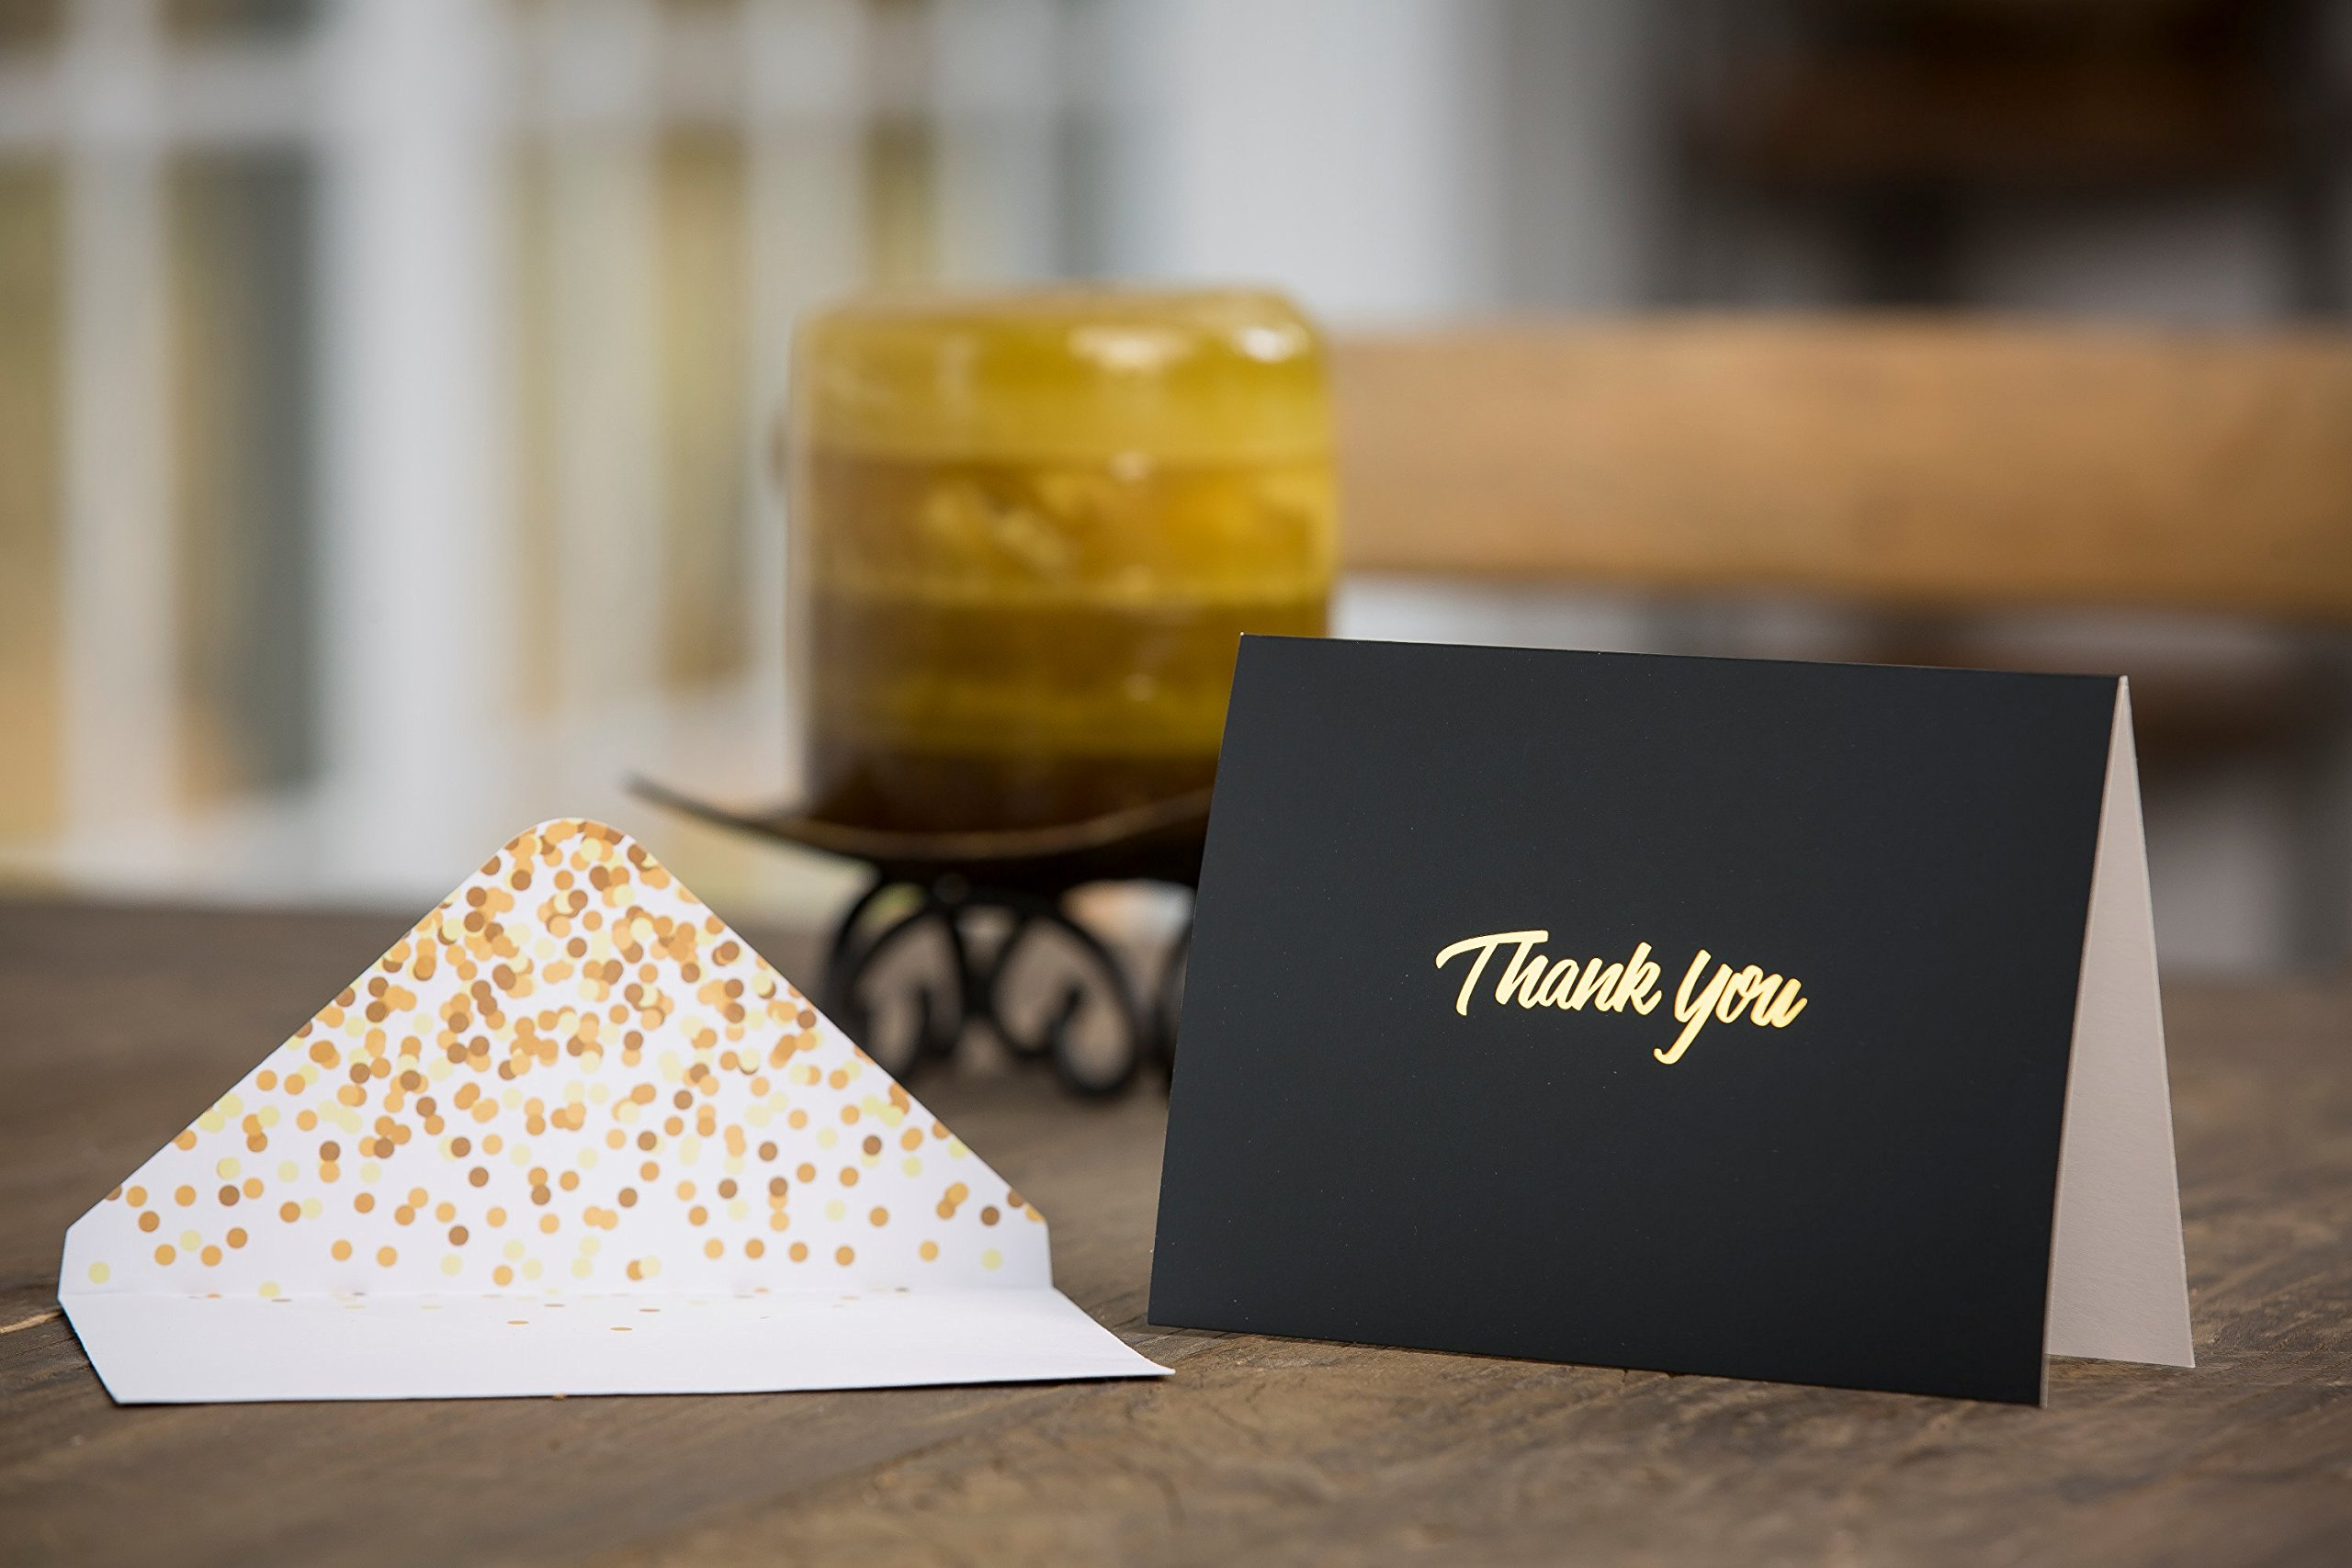 100 Thank You Cards with Envelopes - Thank You Notes, Black & Gold Foil - Blank Cards with Envelopes - For Business, Wedding, Graduation, Baby/Bridal Shower, Funeral, Professional Thank You Cards Bulk by FORTIVO (Image #7)